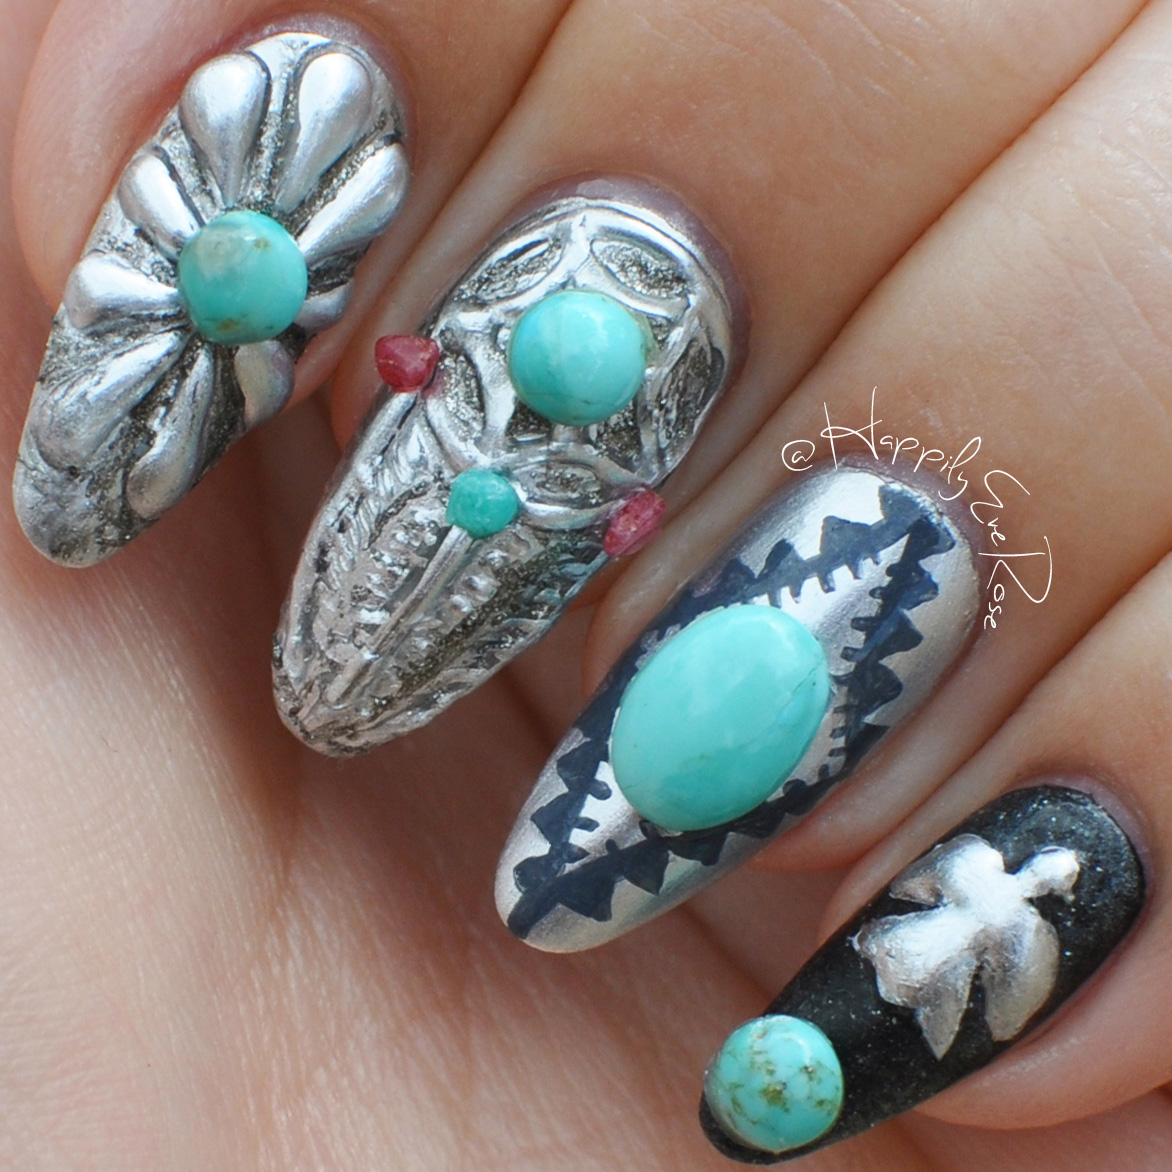 Nail Art Tutorial: Turquoise Jewelry